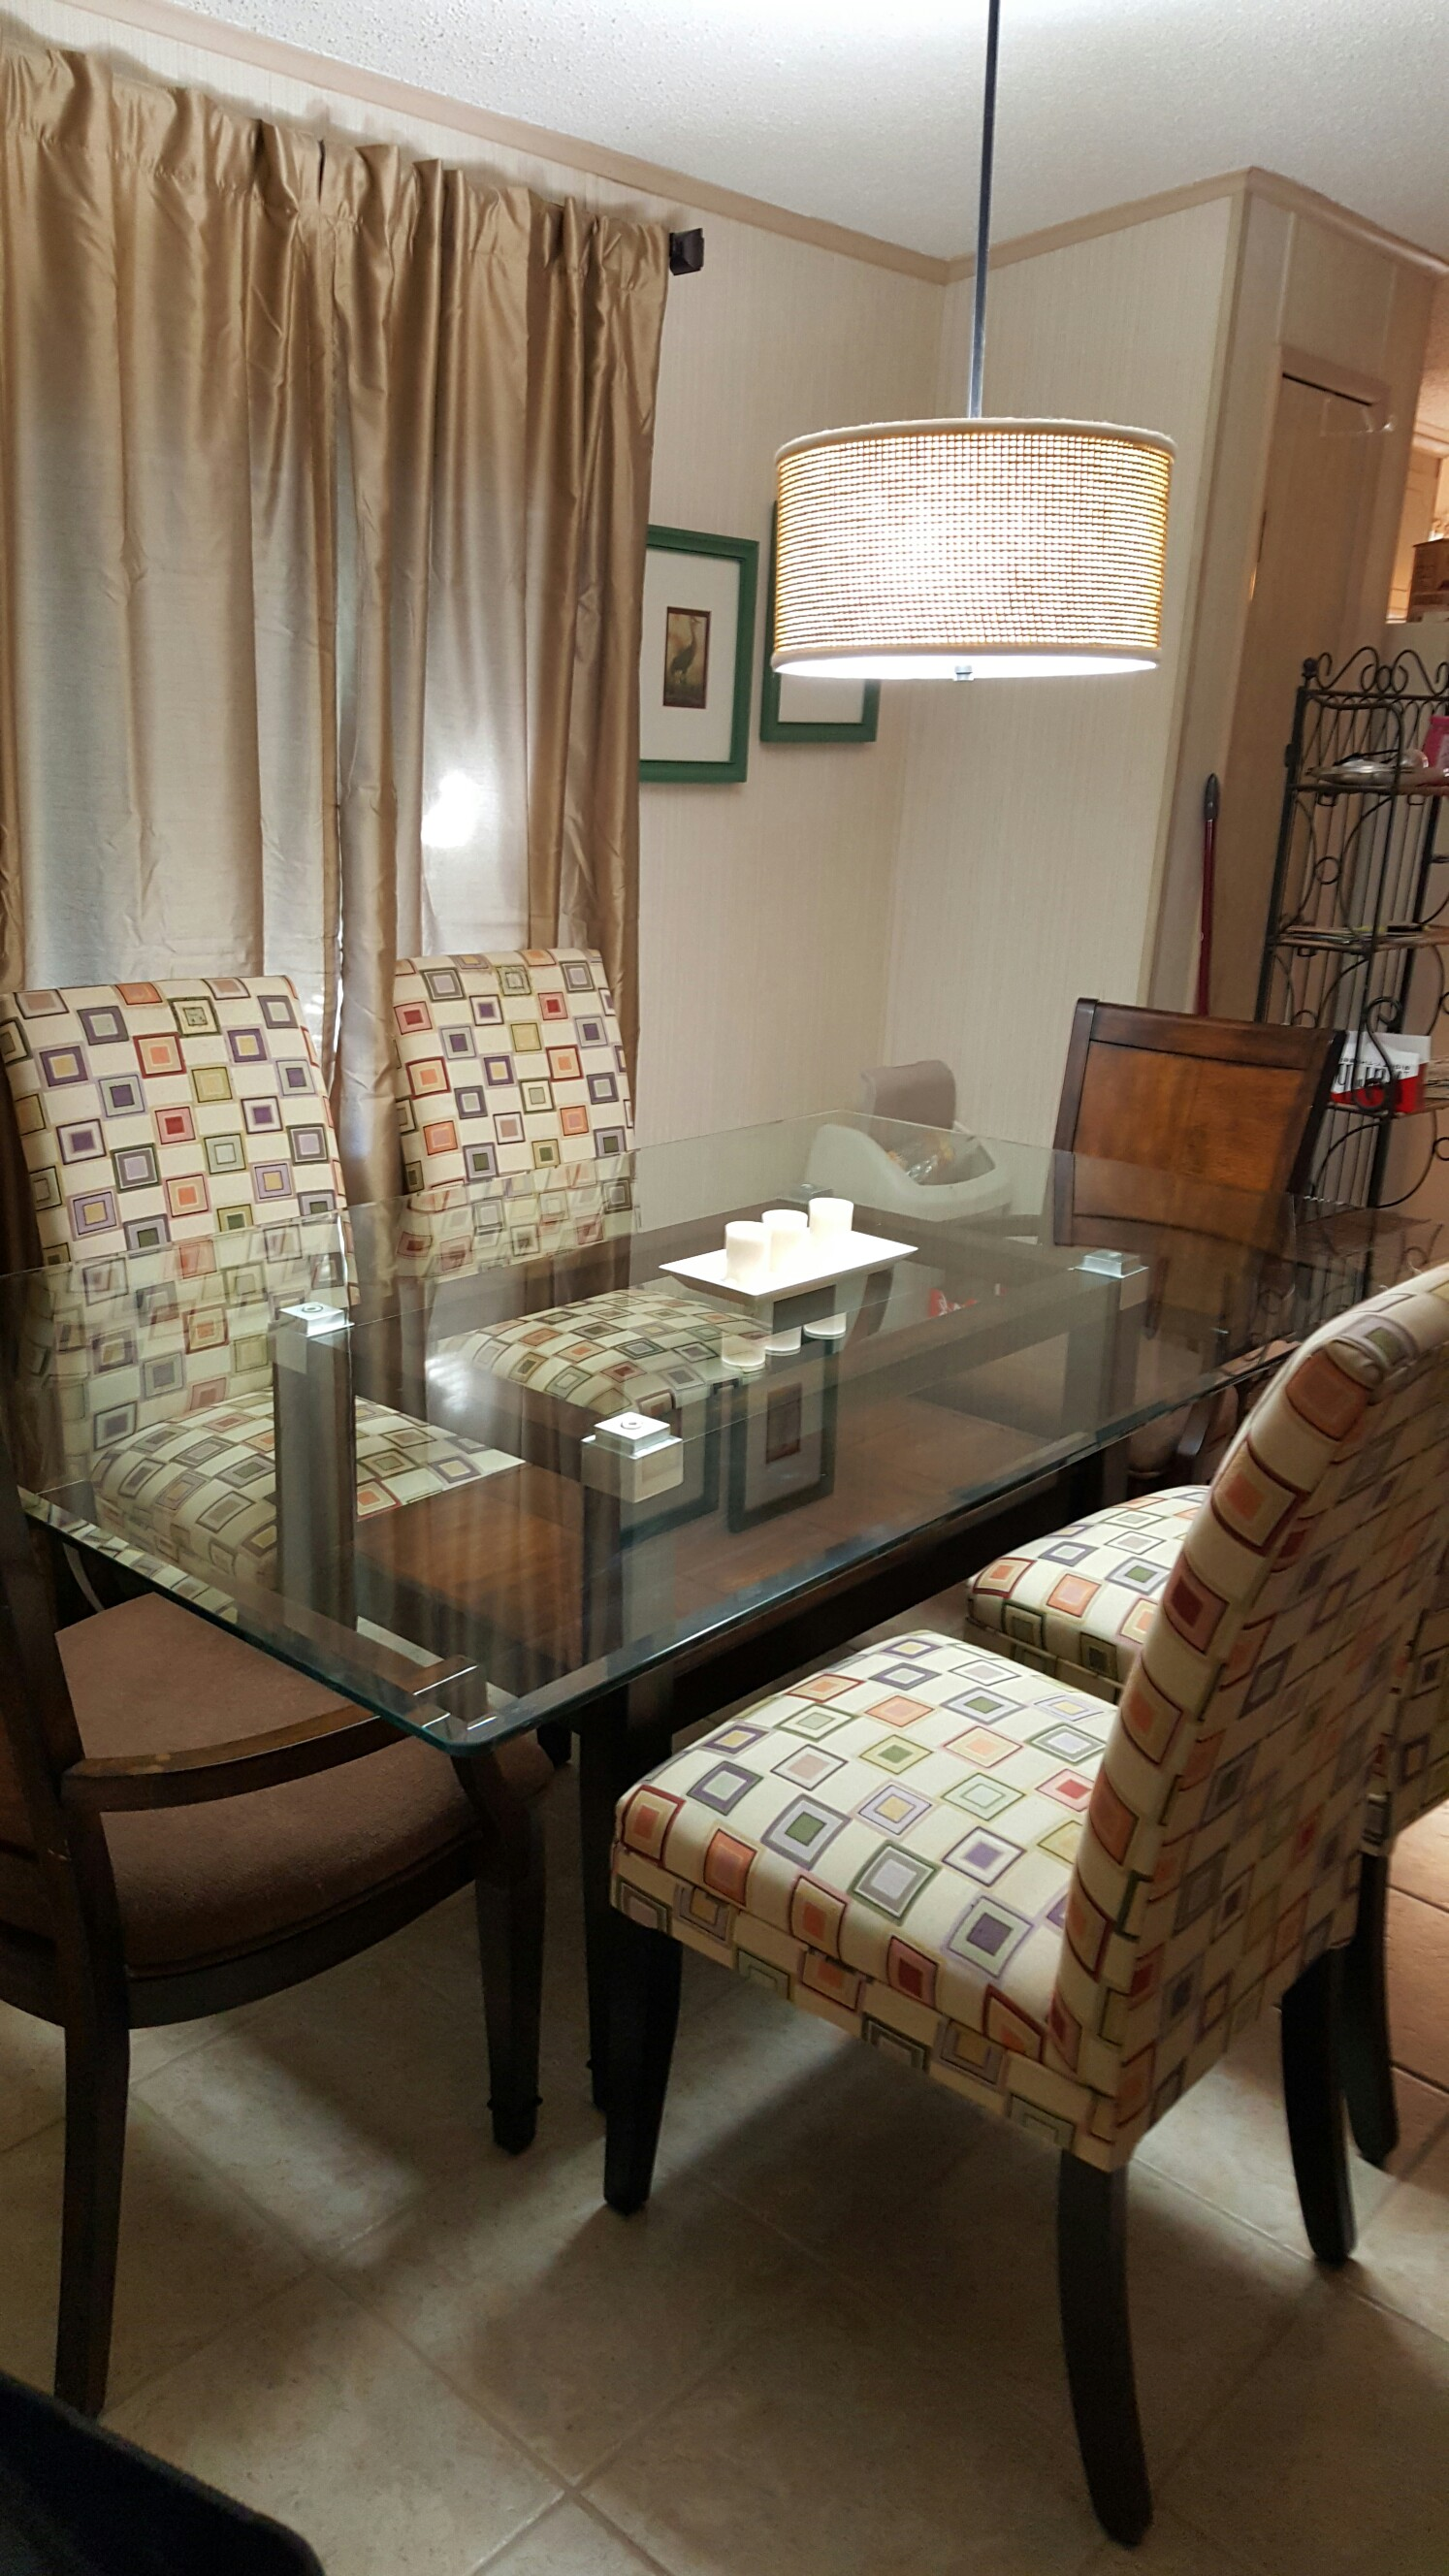 Delicieux Design Furniture Consignment 5314 S Florida Ave, Lakeland, FL 33813   YP.com